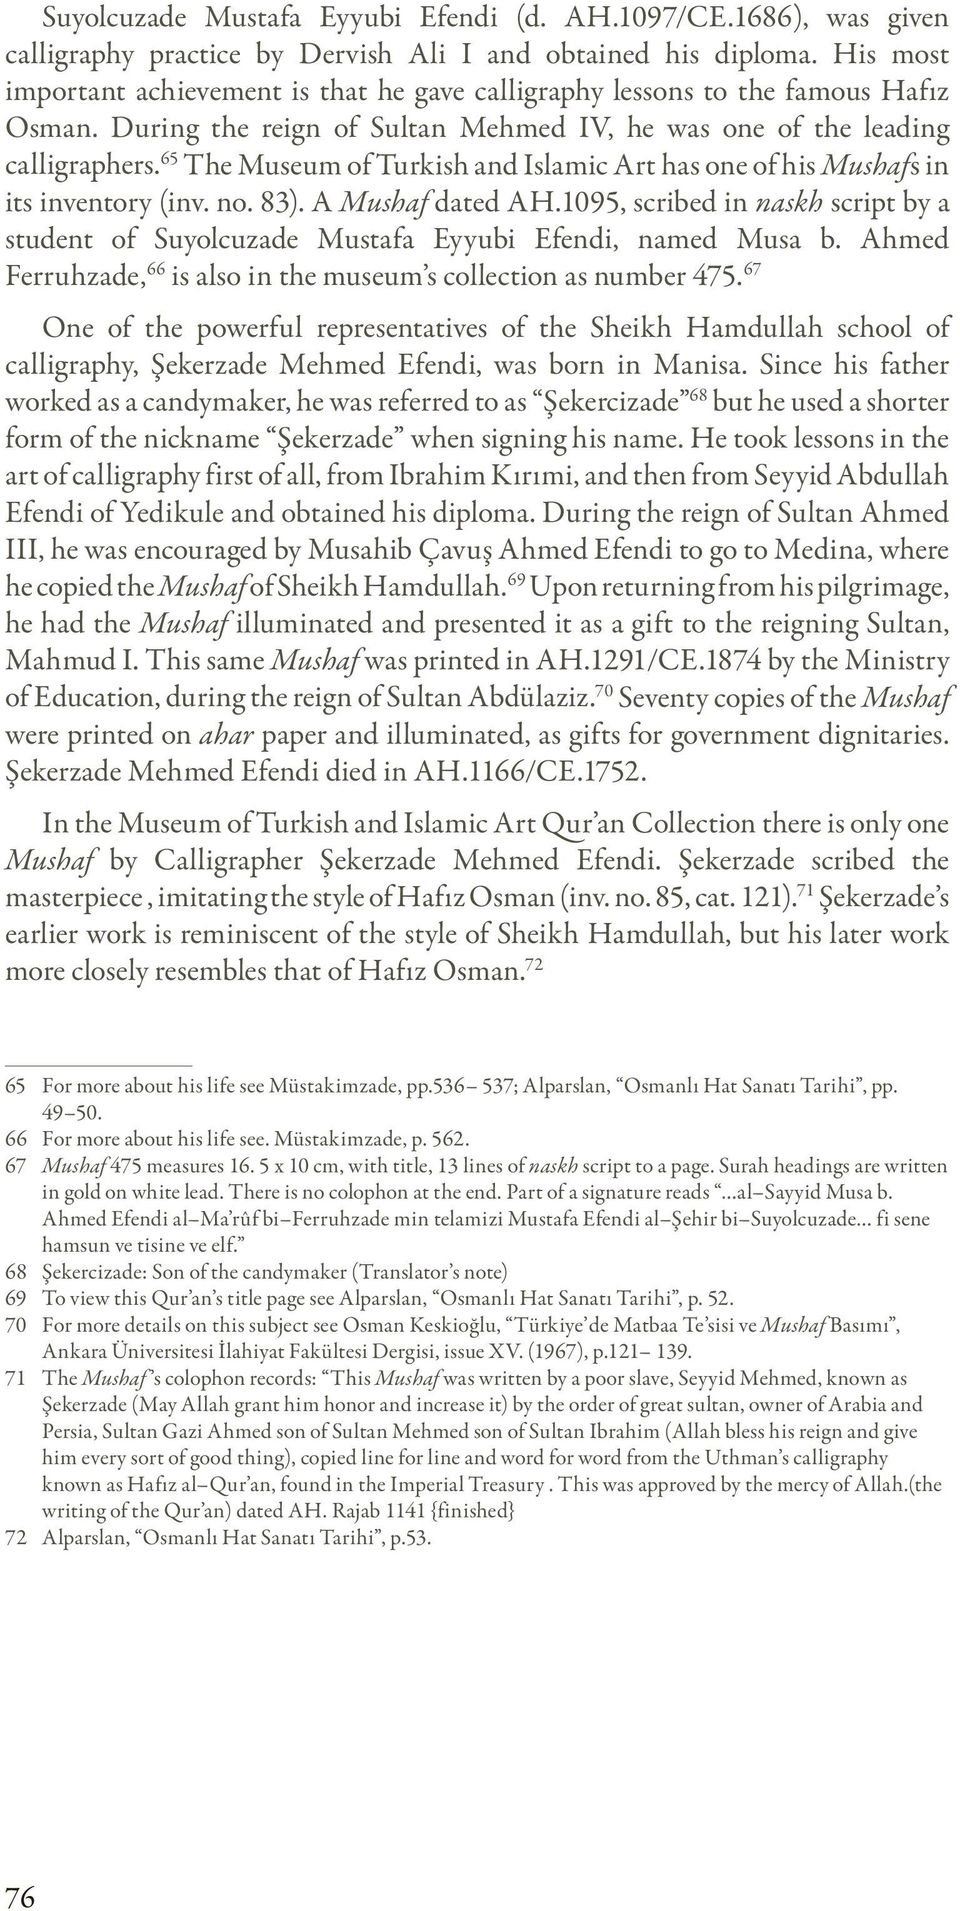 65 The Museum of Turkish and Islamic Art has one of his Mushafs in its inventory (inv. no. 83). A Mushaf dated AH.